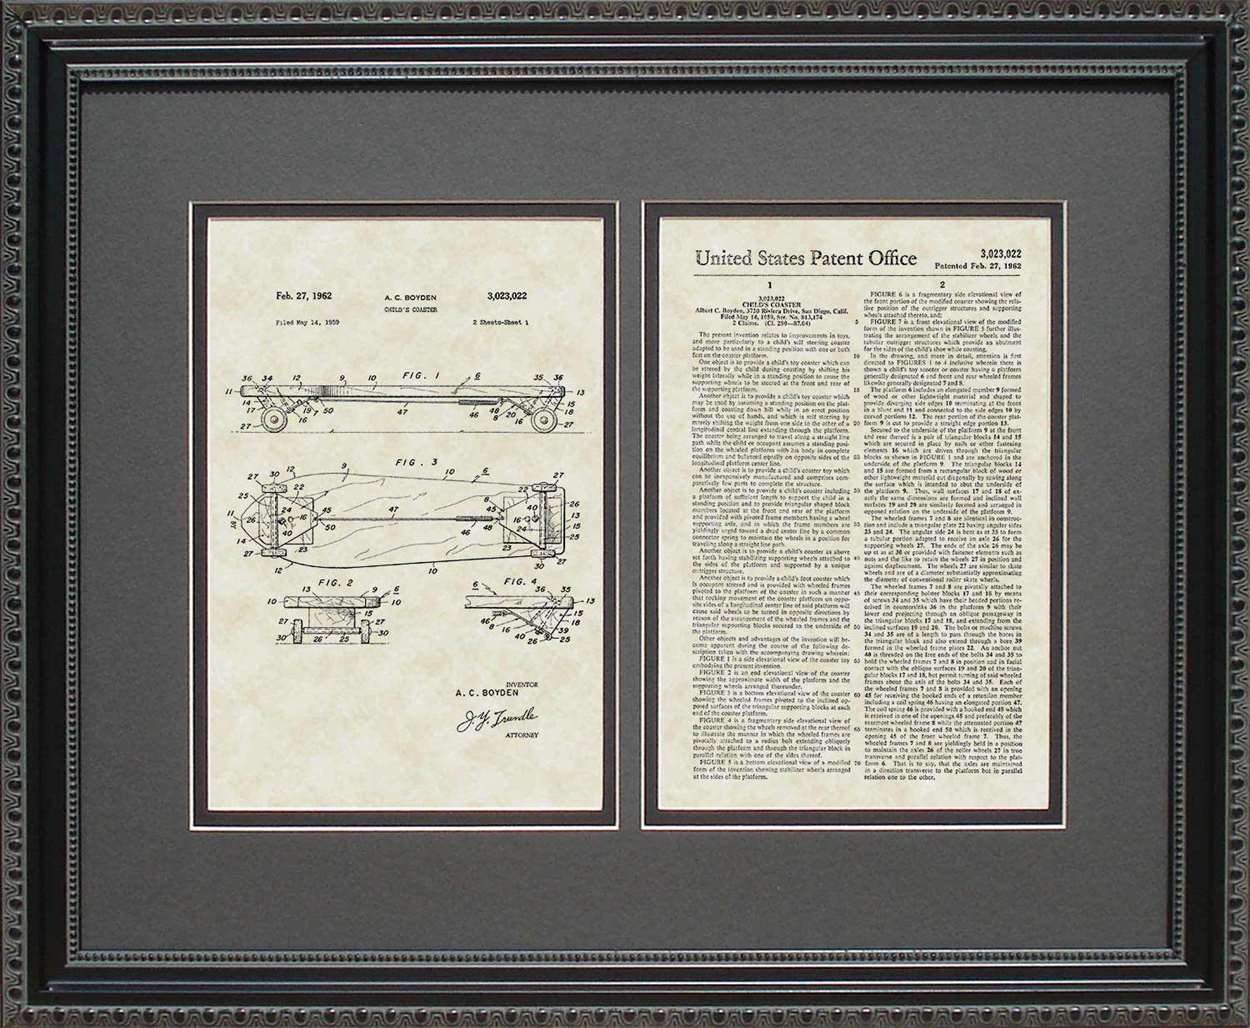 Skateboard Patent, Art & Copy, Boyden, 1962, 16x20